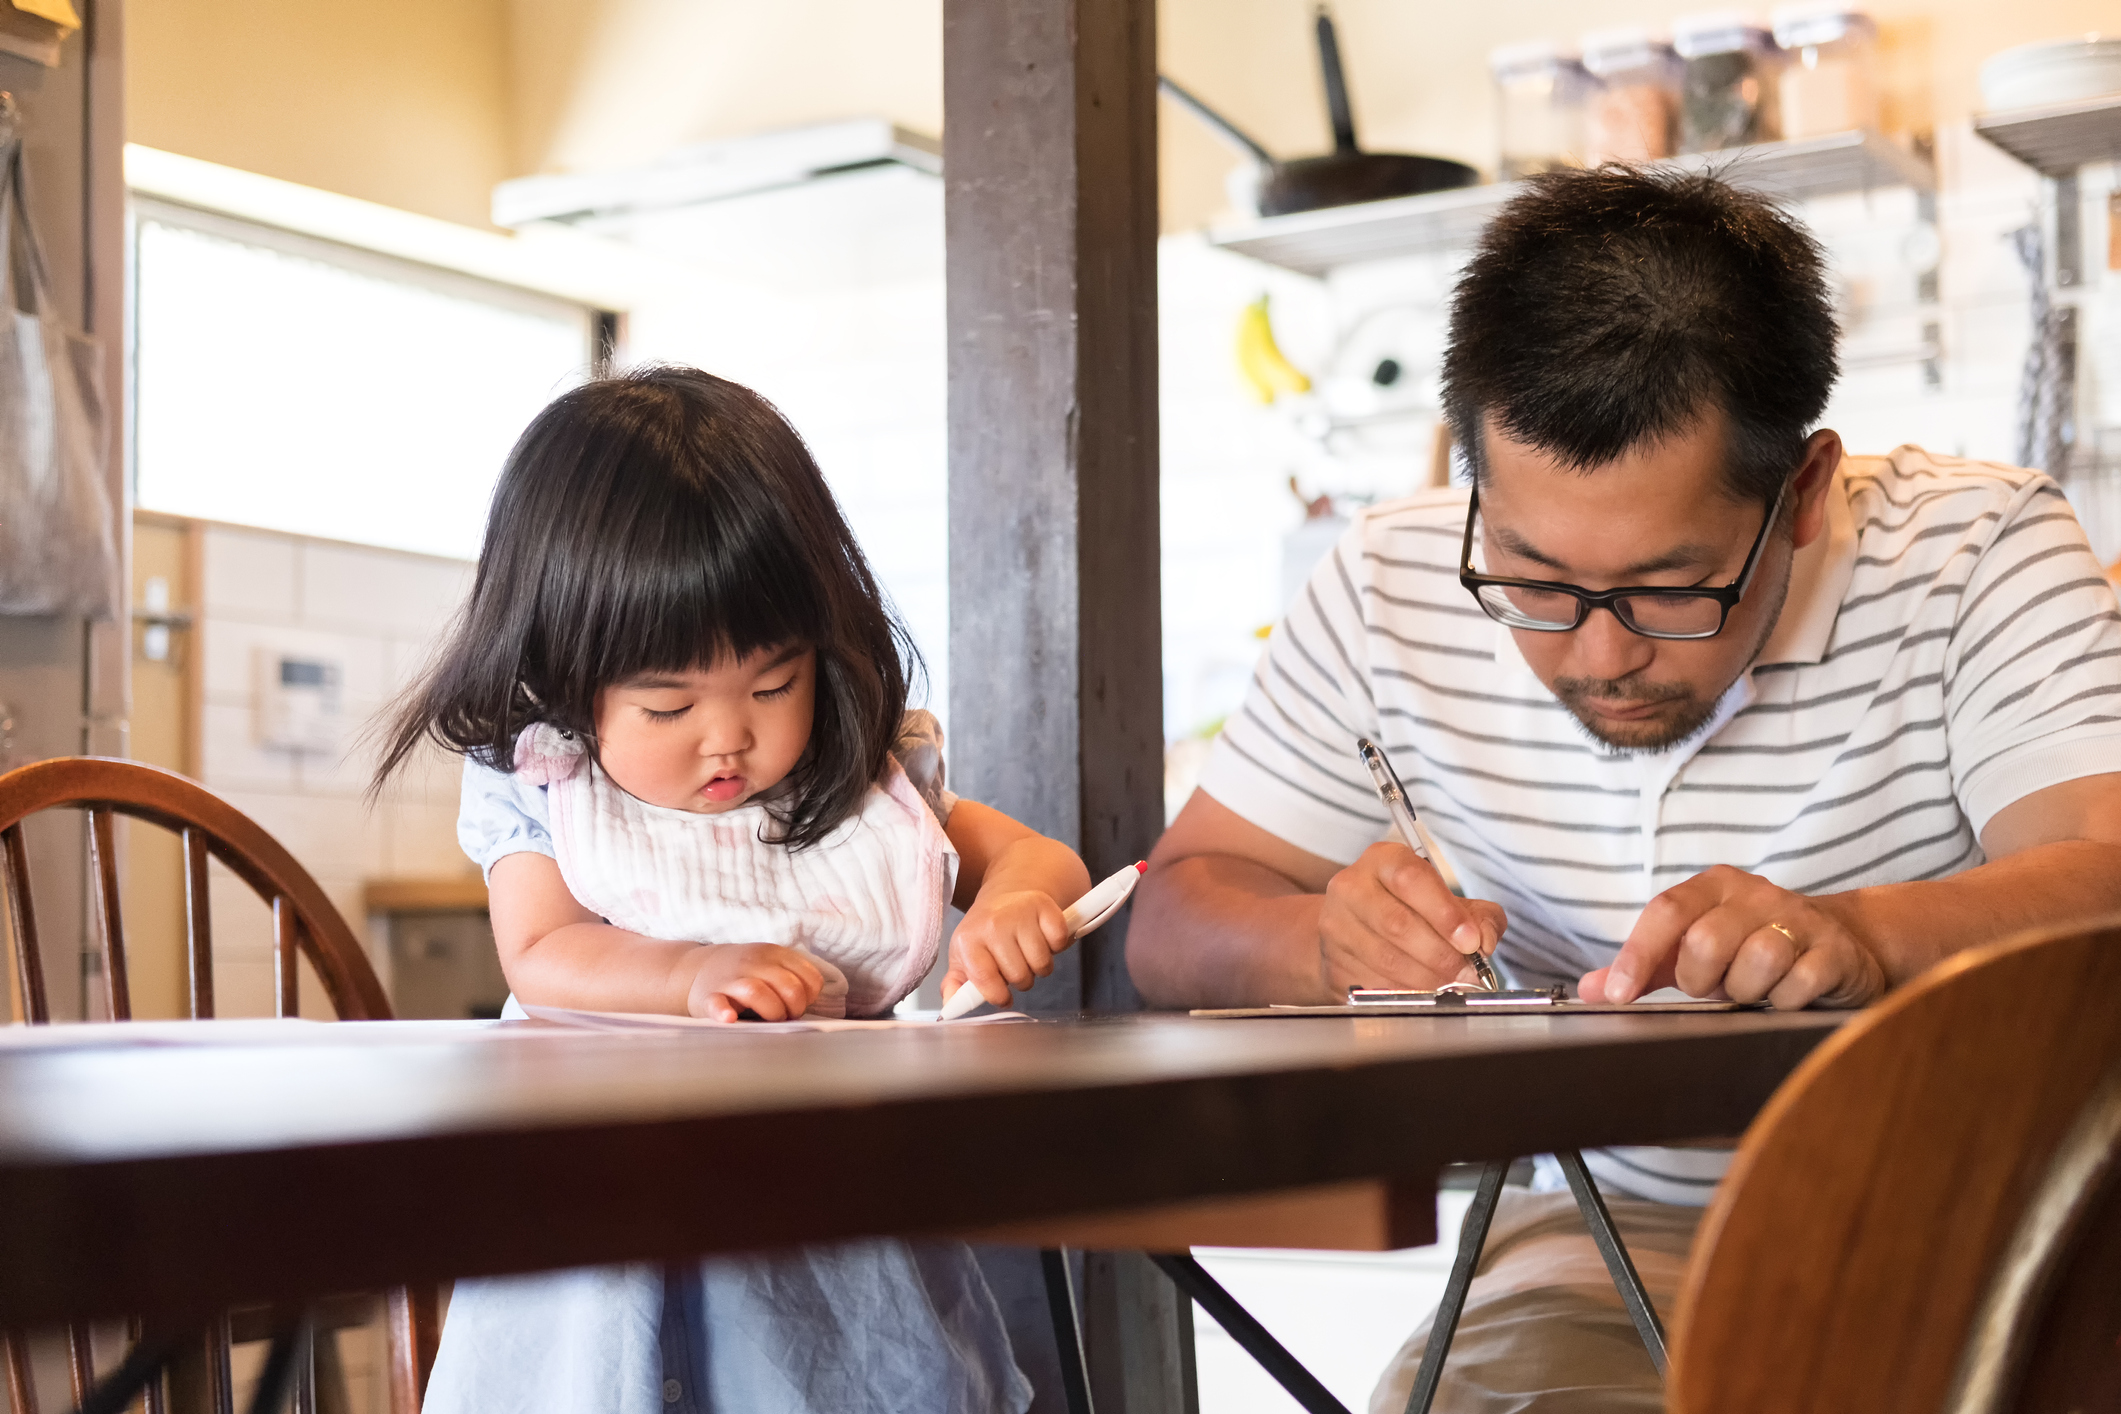 Father and daughter taking a survey at kitchen table